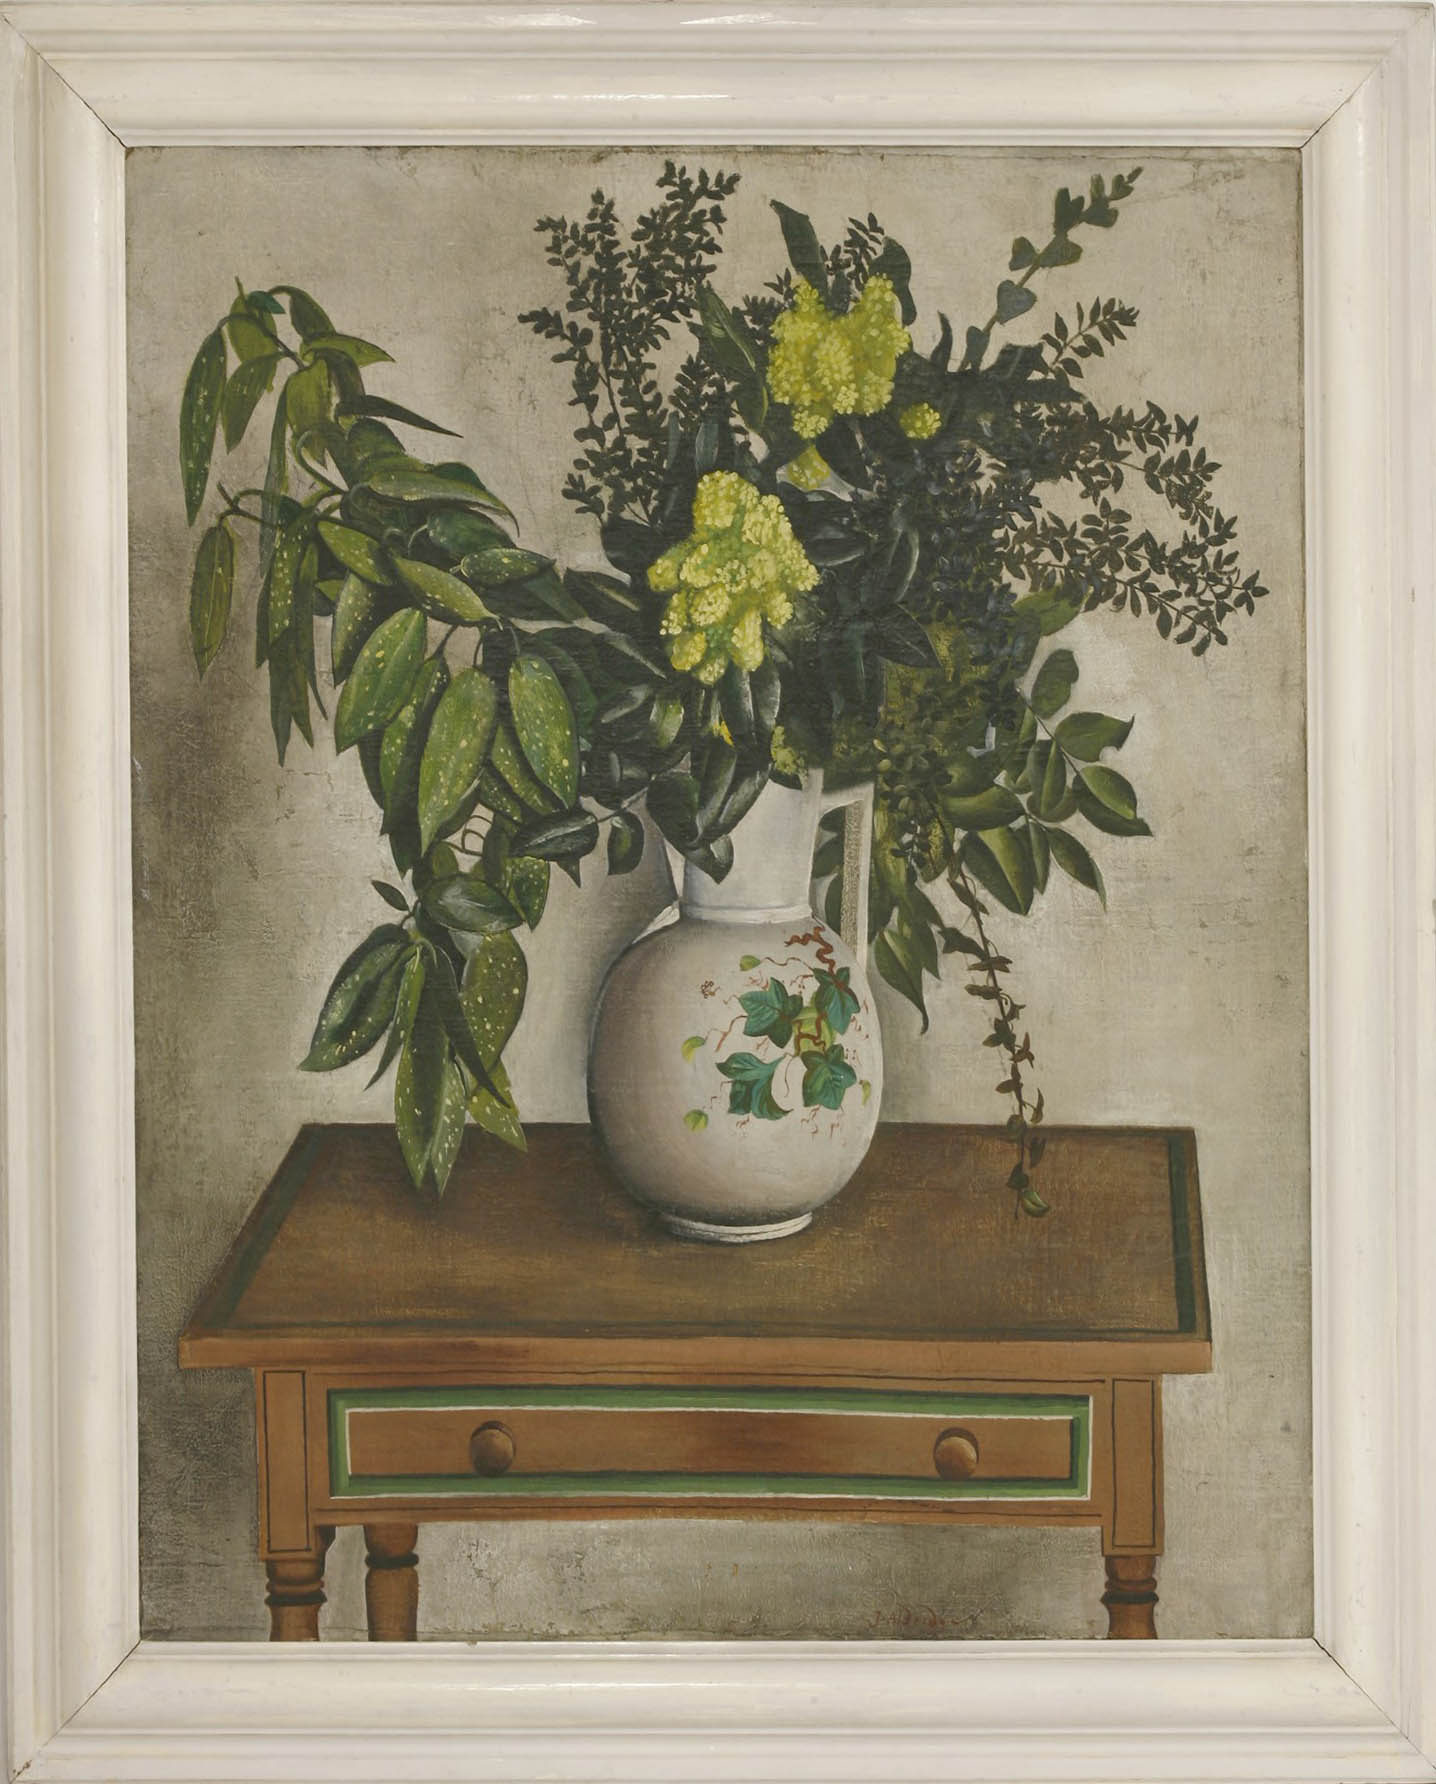 John Aldridge RA (1905-1983) EVERGREENS. Sold for £6,100 including premium at Sworders in July 2018